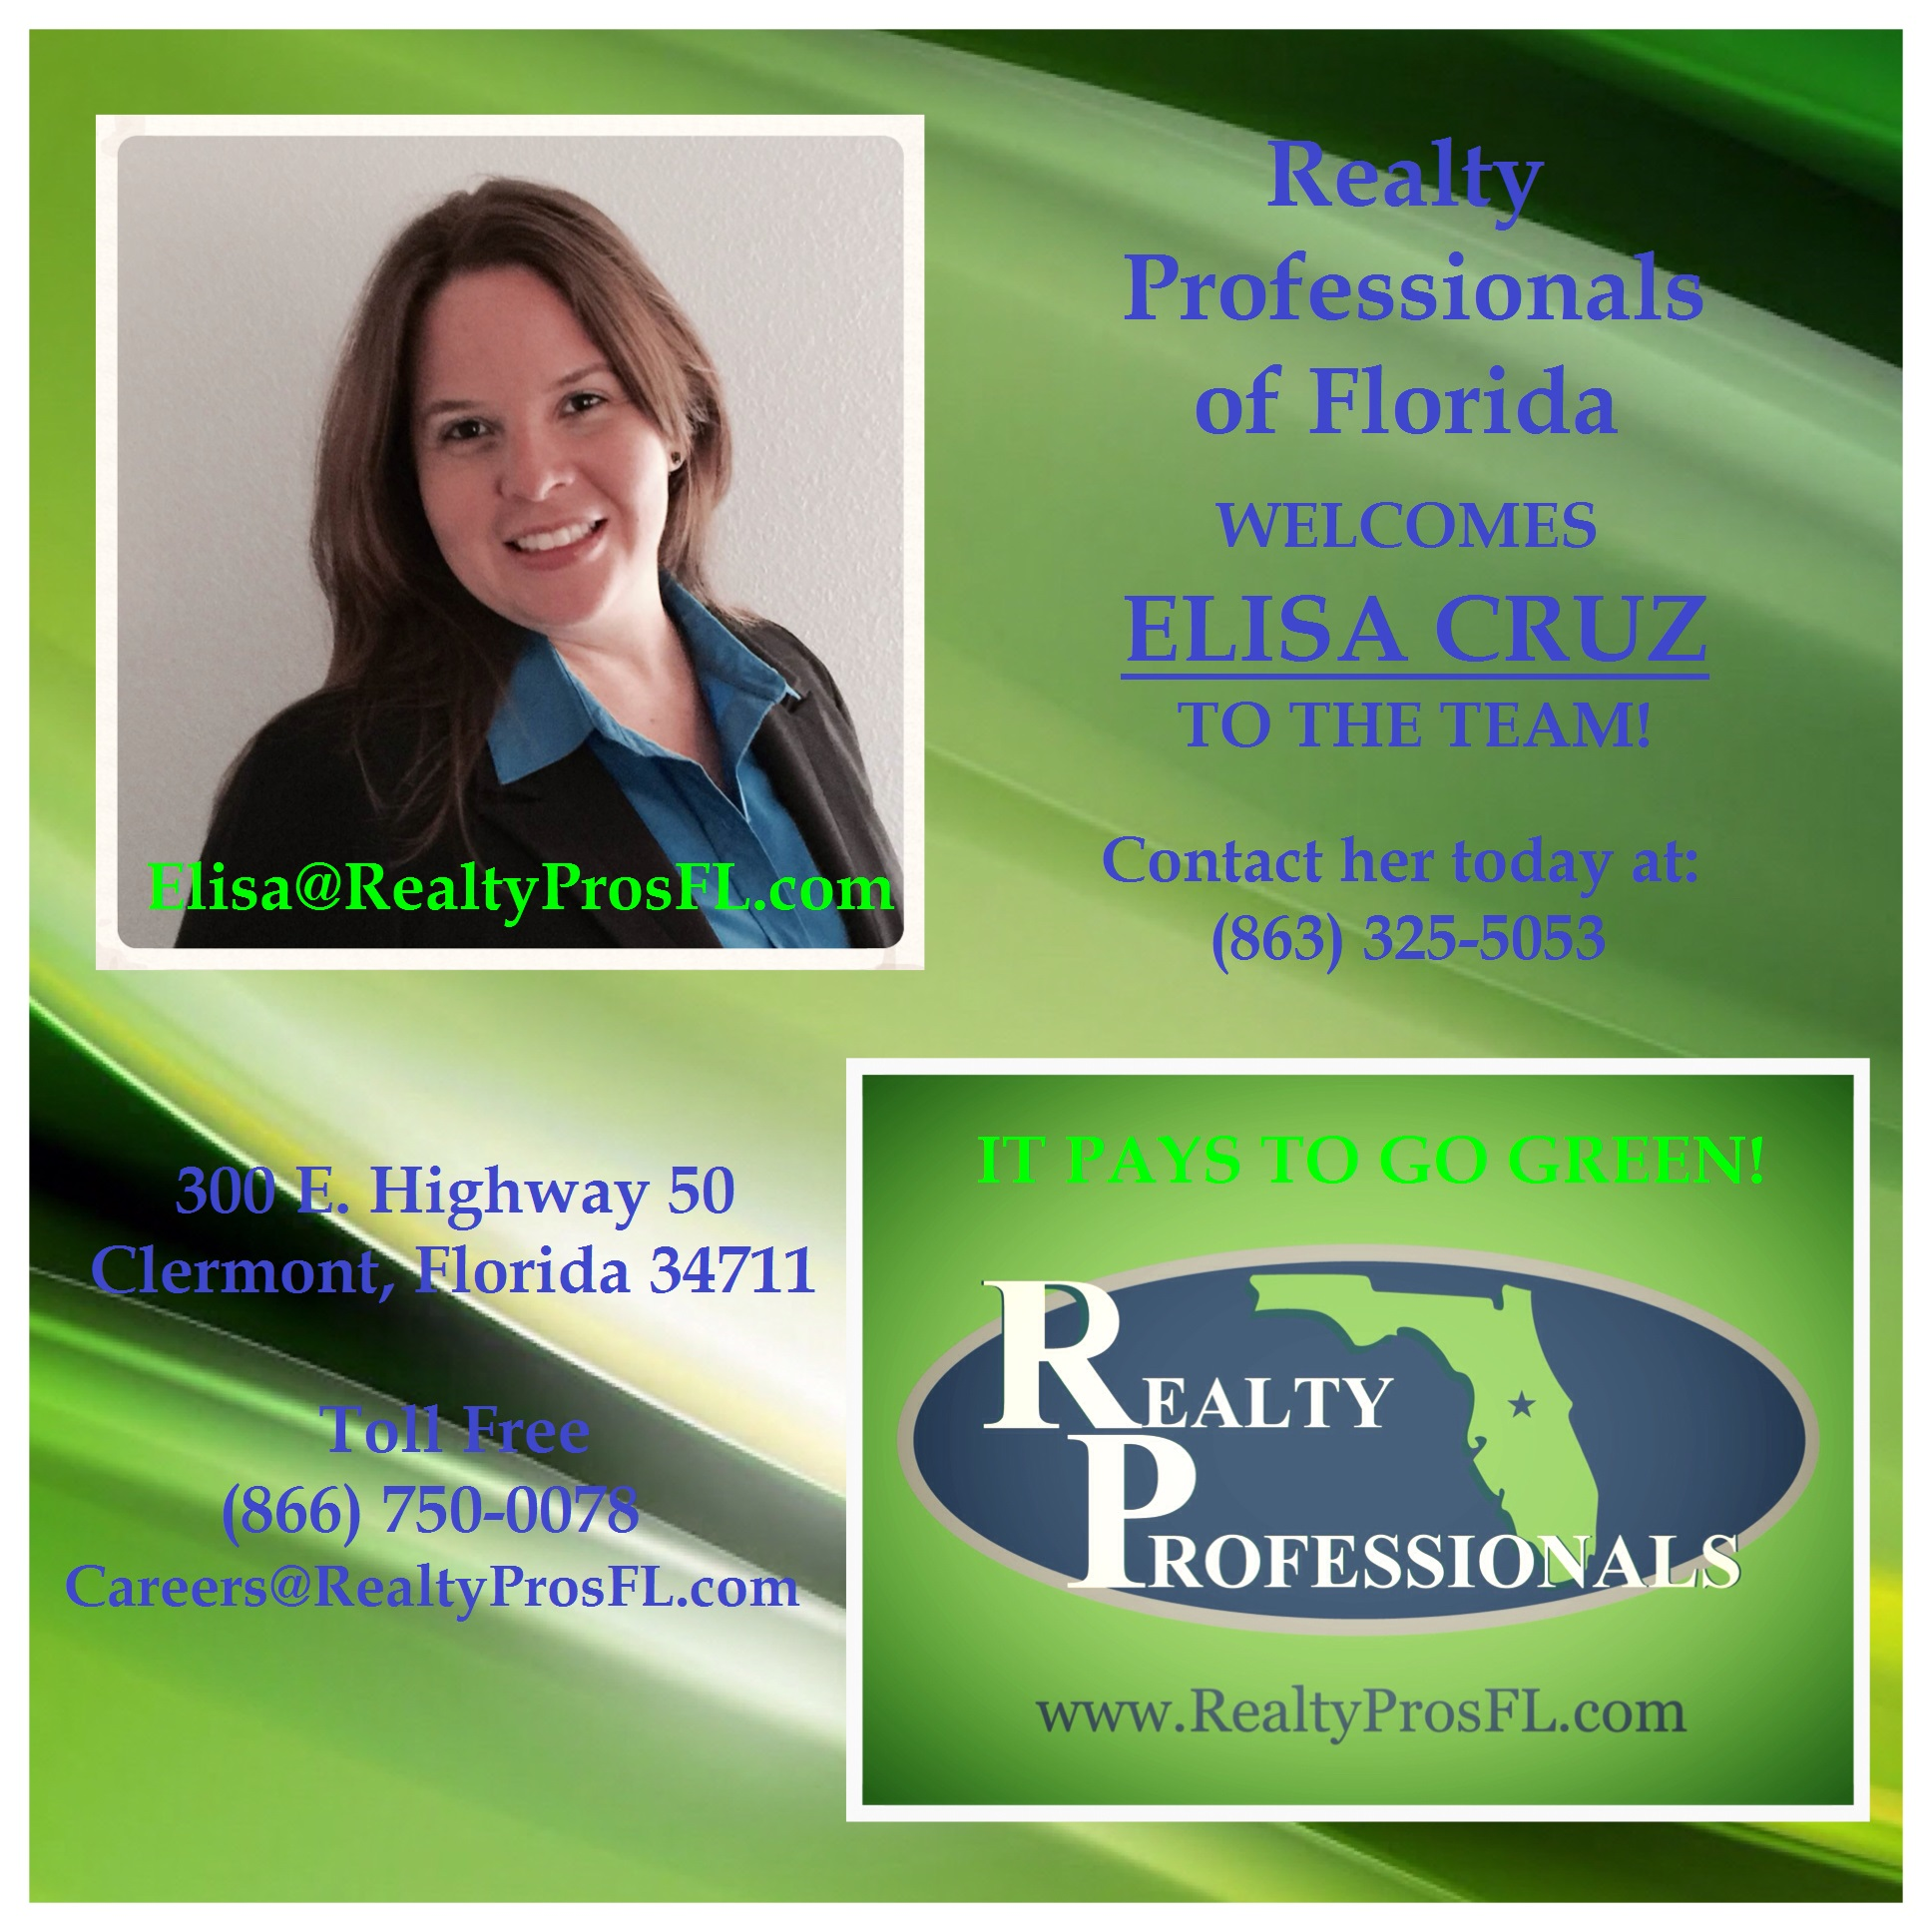 Agents! Agents! Realty Professionals is Growing!